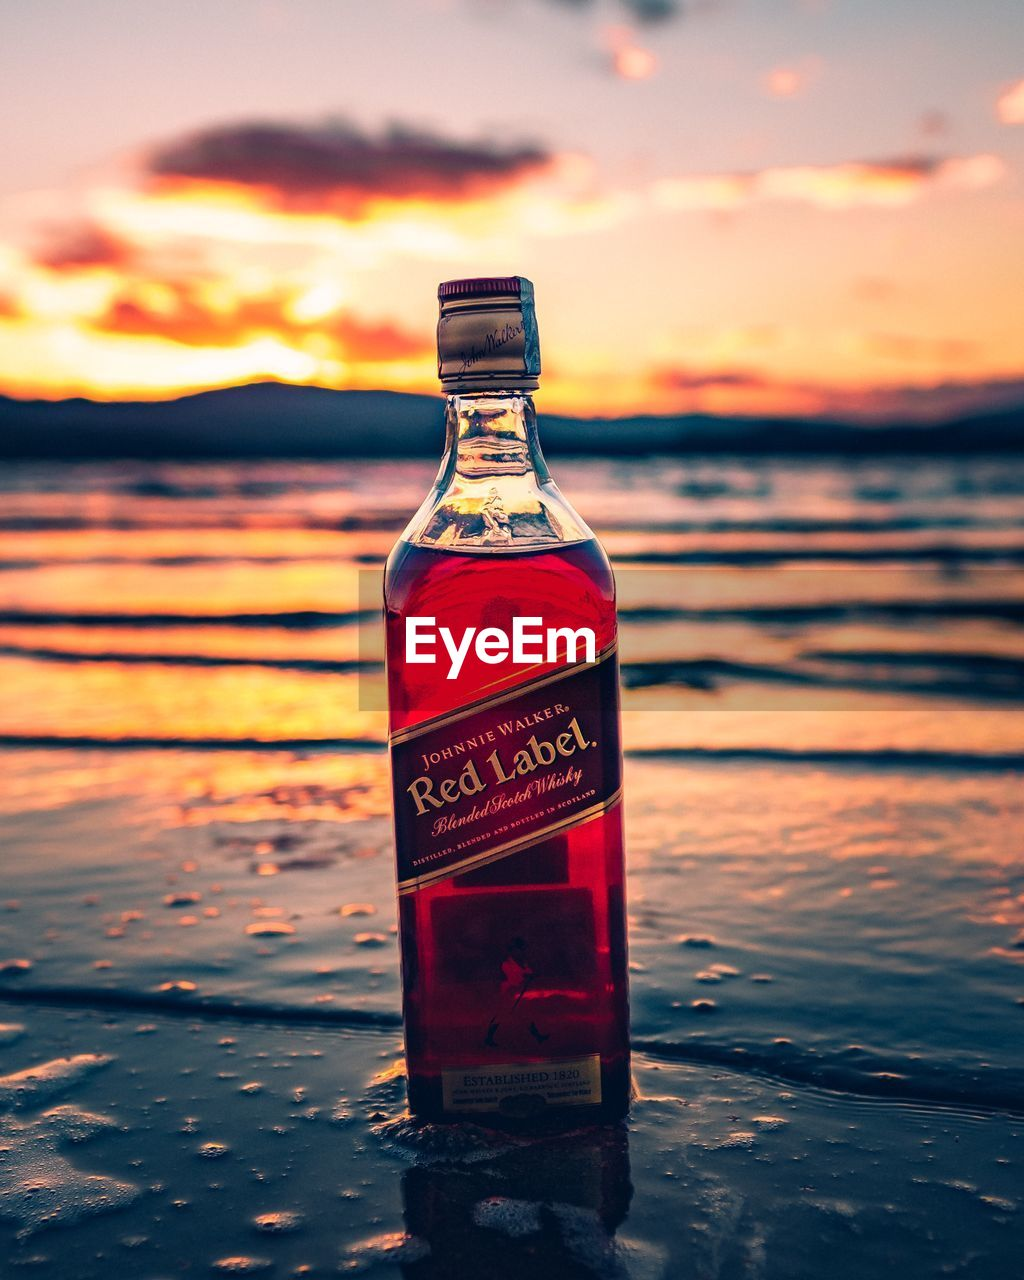 bottle, sunset, water, container, sky, orange color, focus on foreground, nature, sea, food and drink, glass - material, no people, close-up, drink, refreshment, transparent, cloud - sky, alcohol, beach